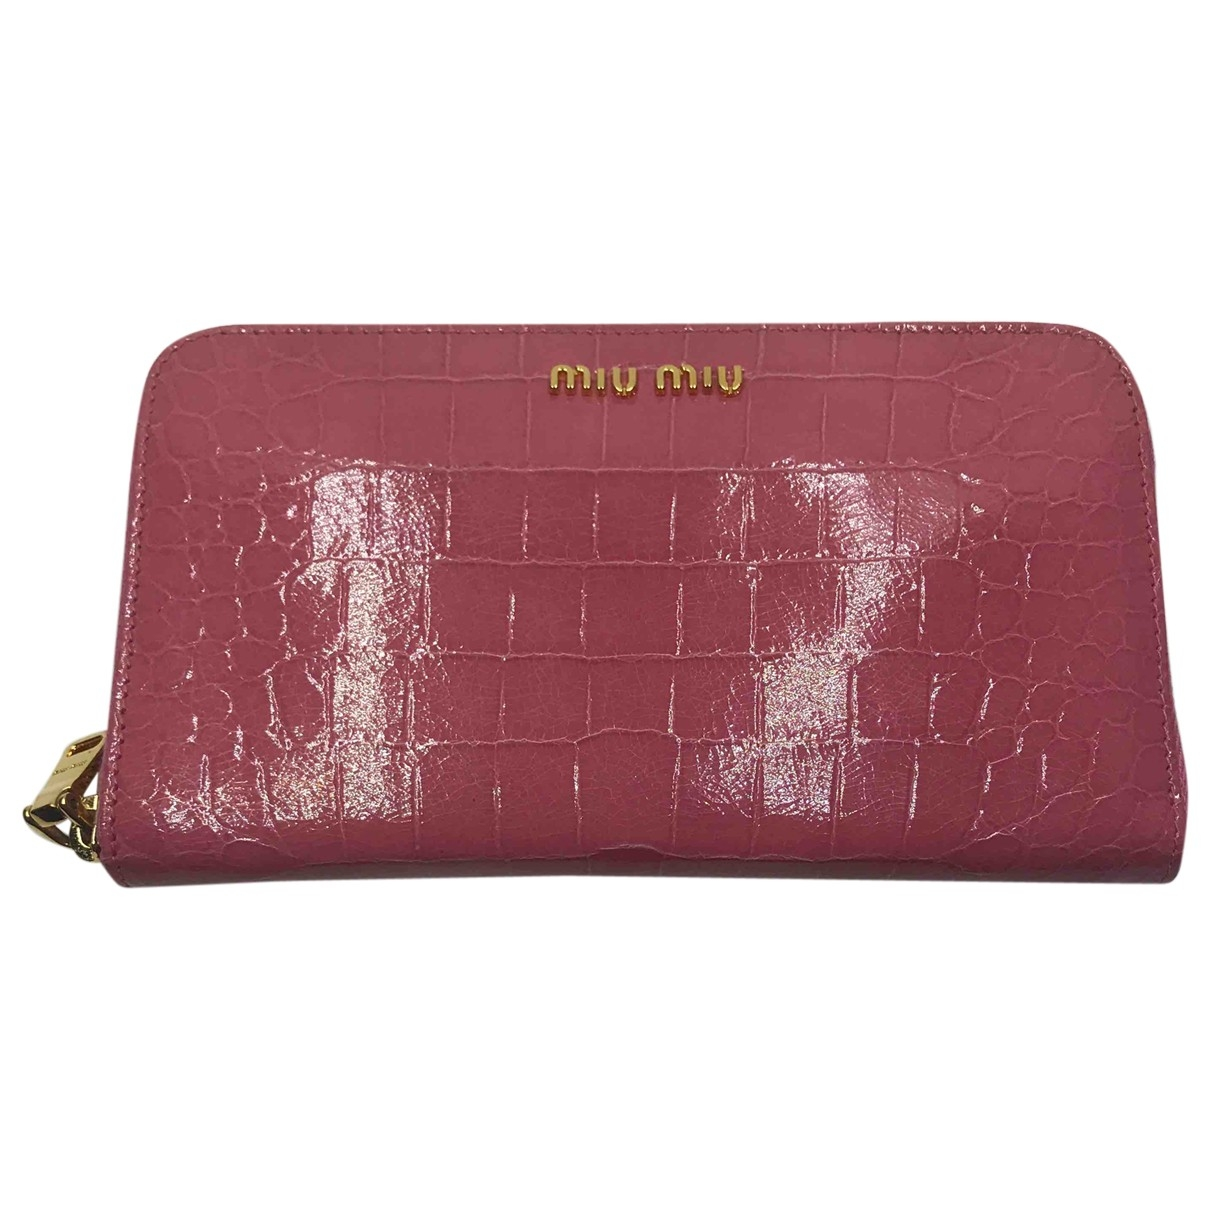 Miu Miu Bow bag Pink Exotic leathers wallet for Women \N